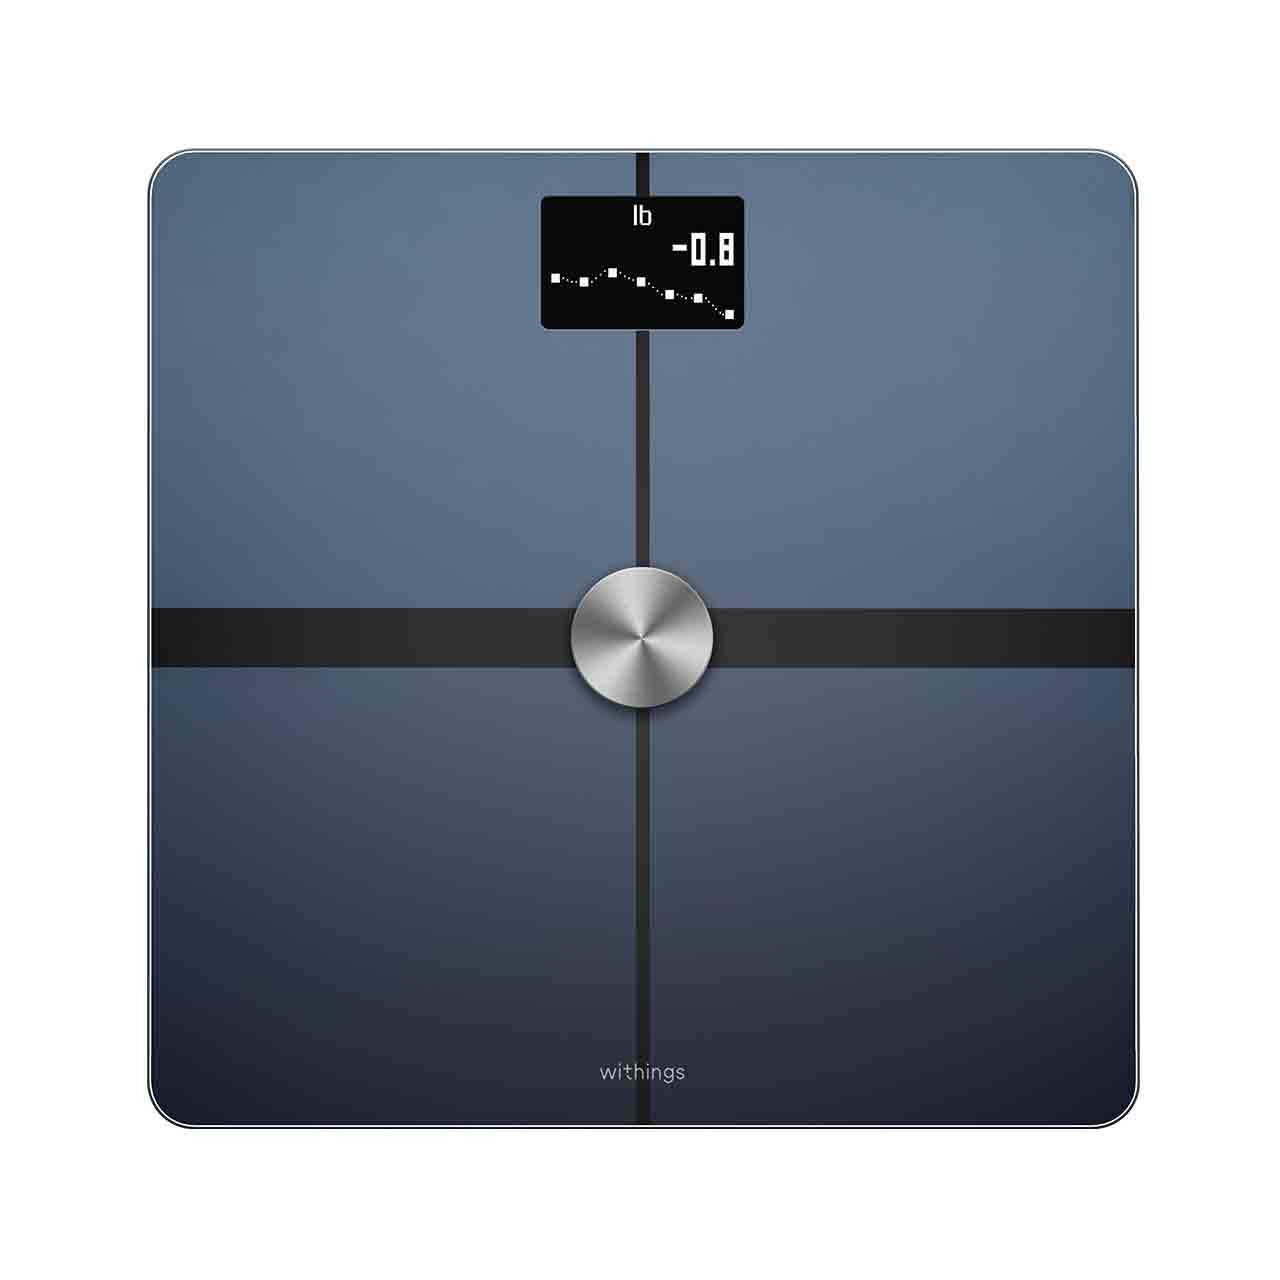 Withings Body+ (Nokia), Black - Body Composition Wi-Fi Scale - Weight, Body fat, Muscle mass, Nutrition tracking, Multi-user - Withings Official Store